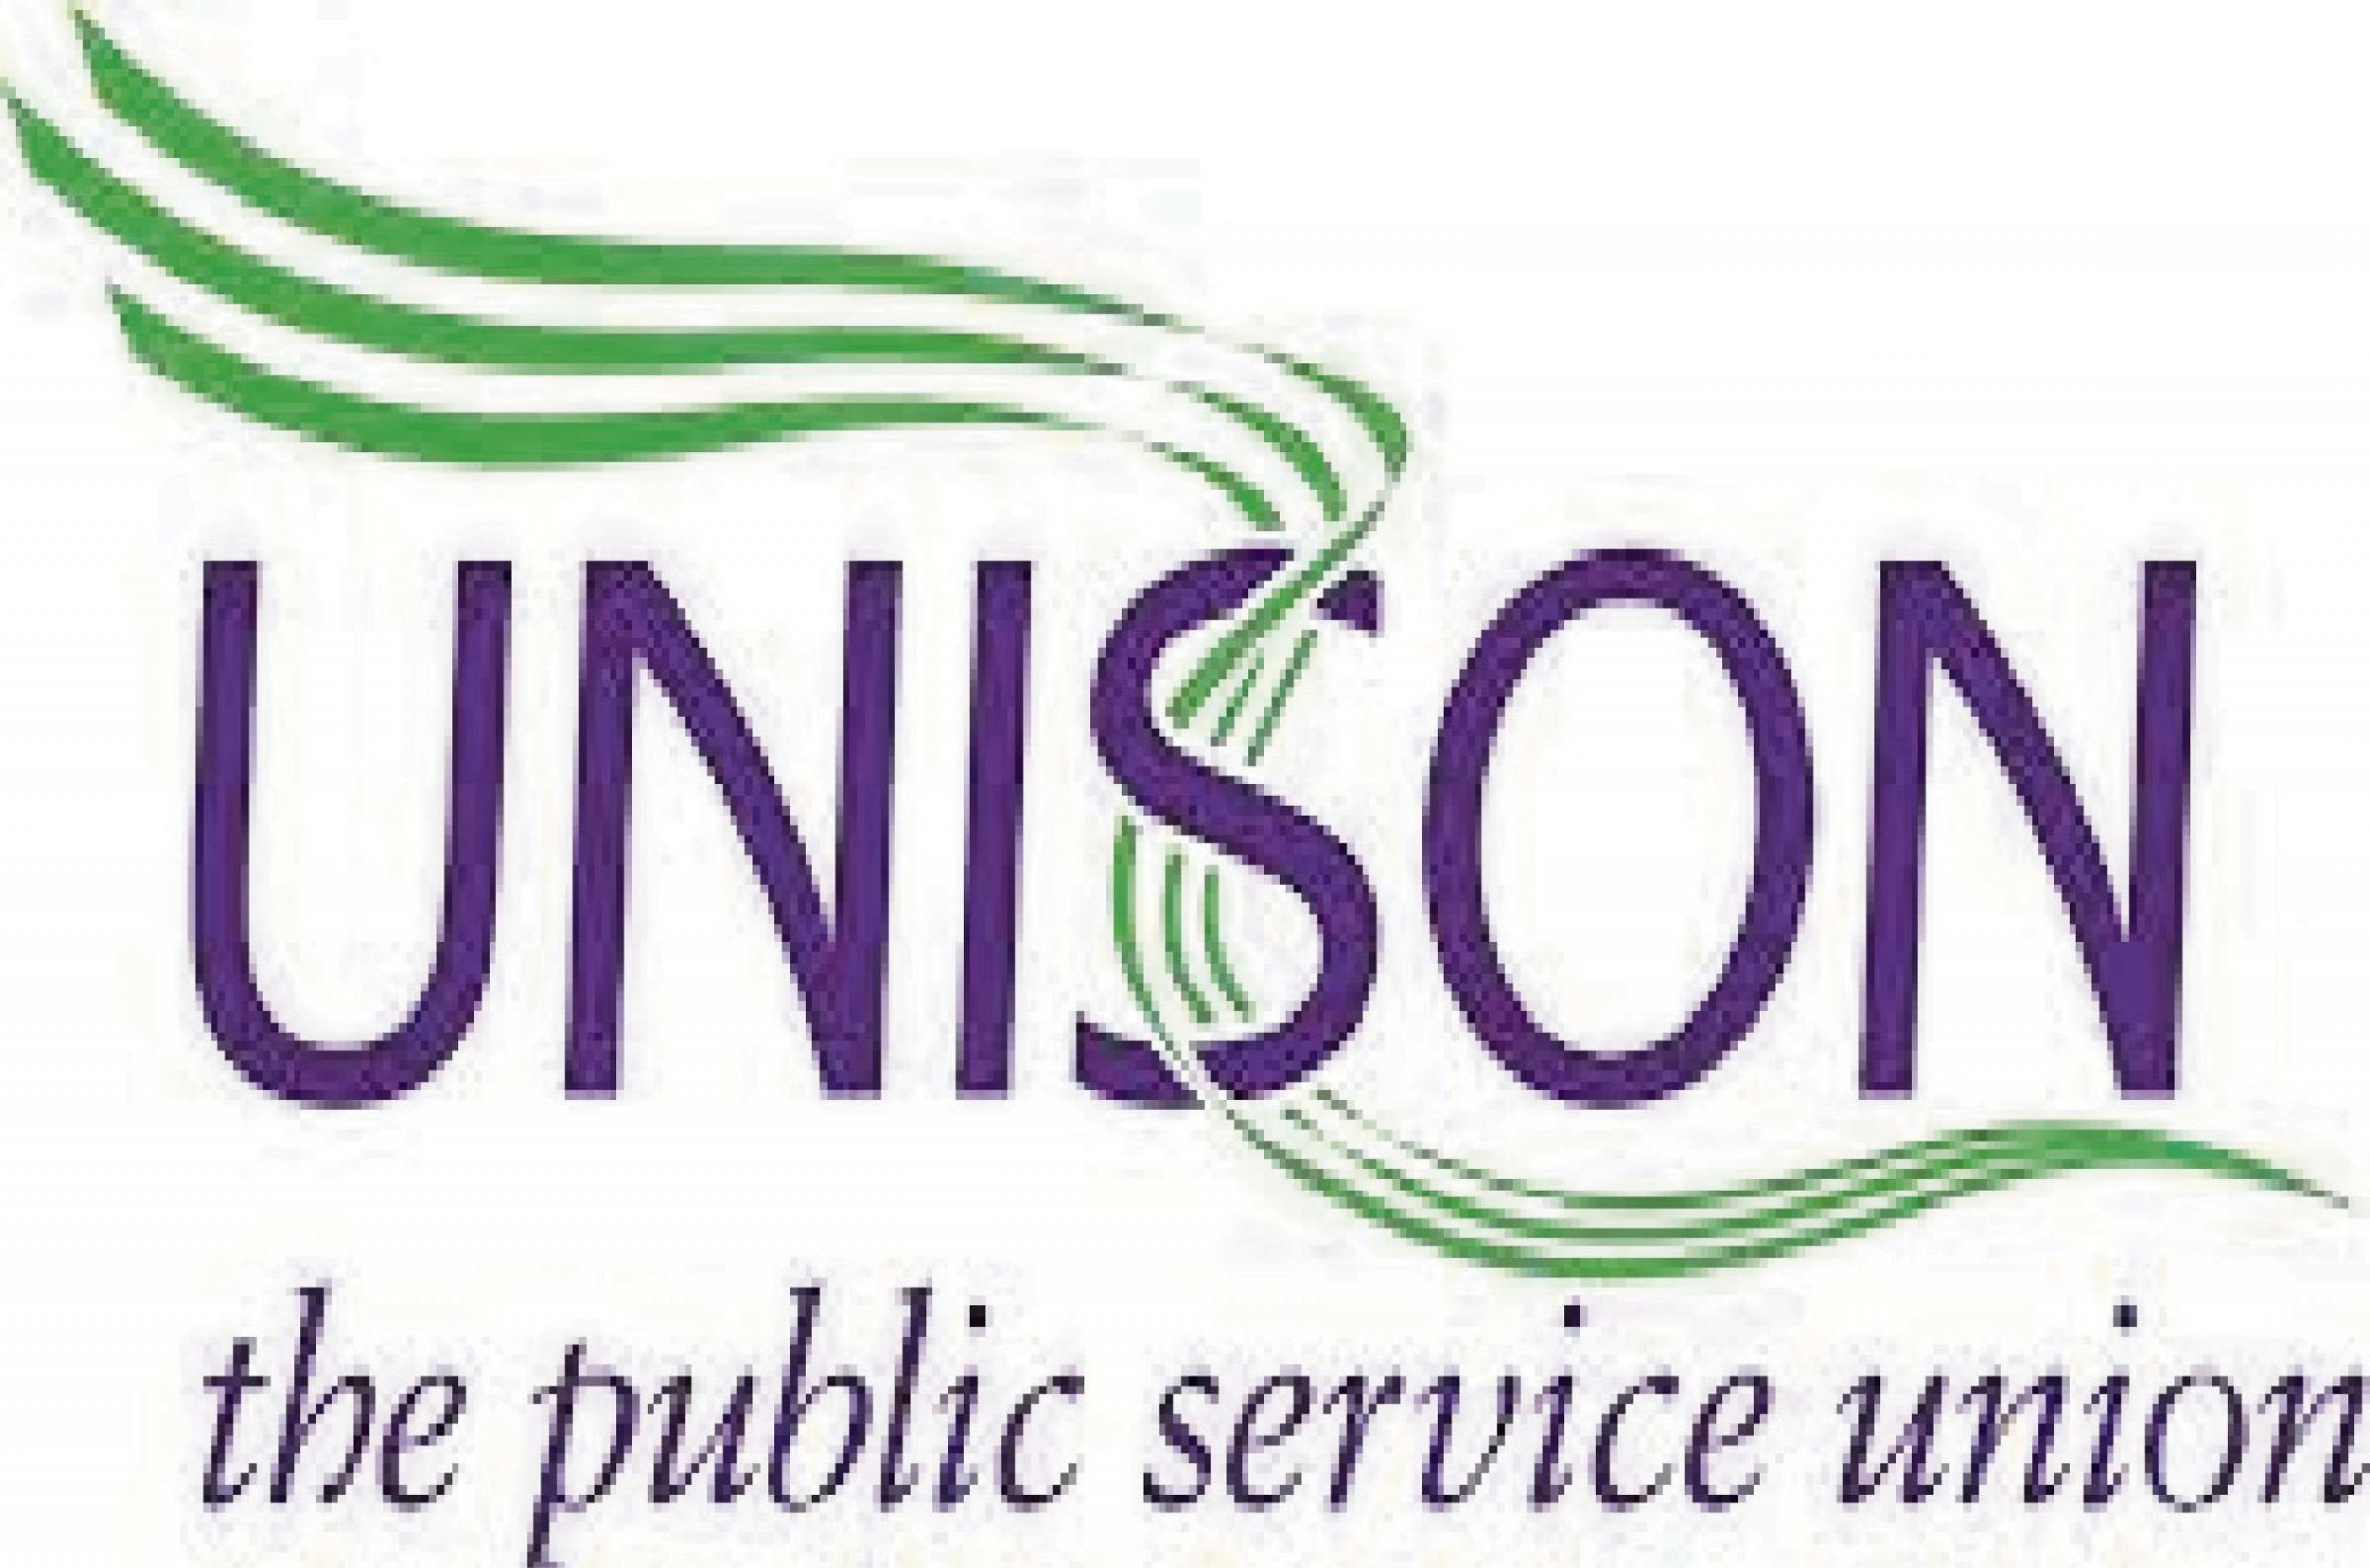 TRADE union members are to express their concerns over pay cuts and changes to working practices ahead of a meeting tonight (Tuesday, April 29).